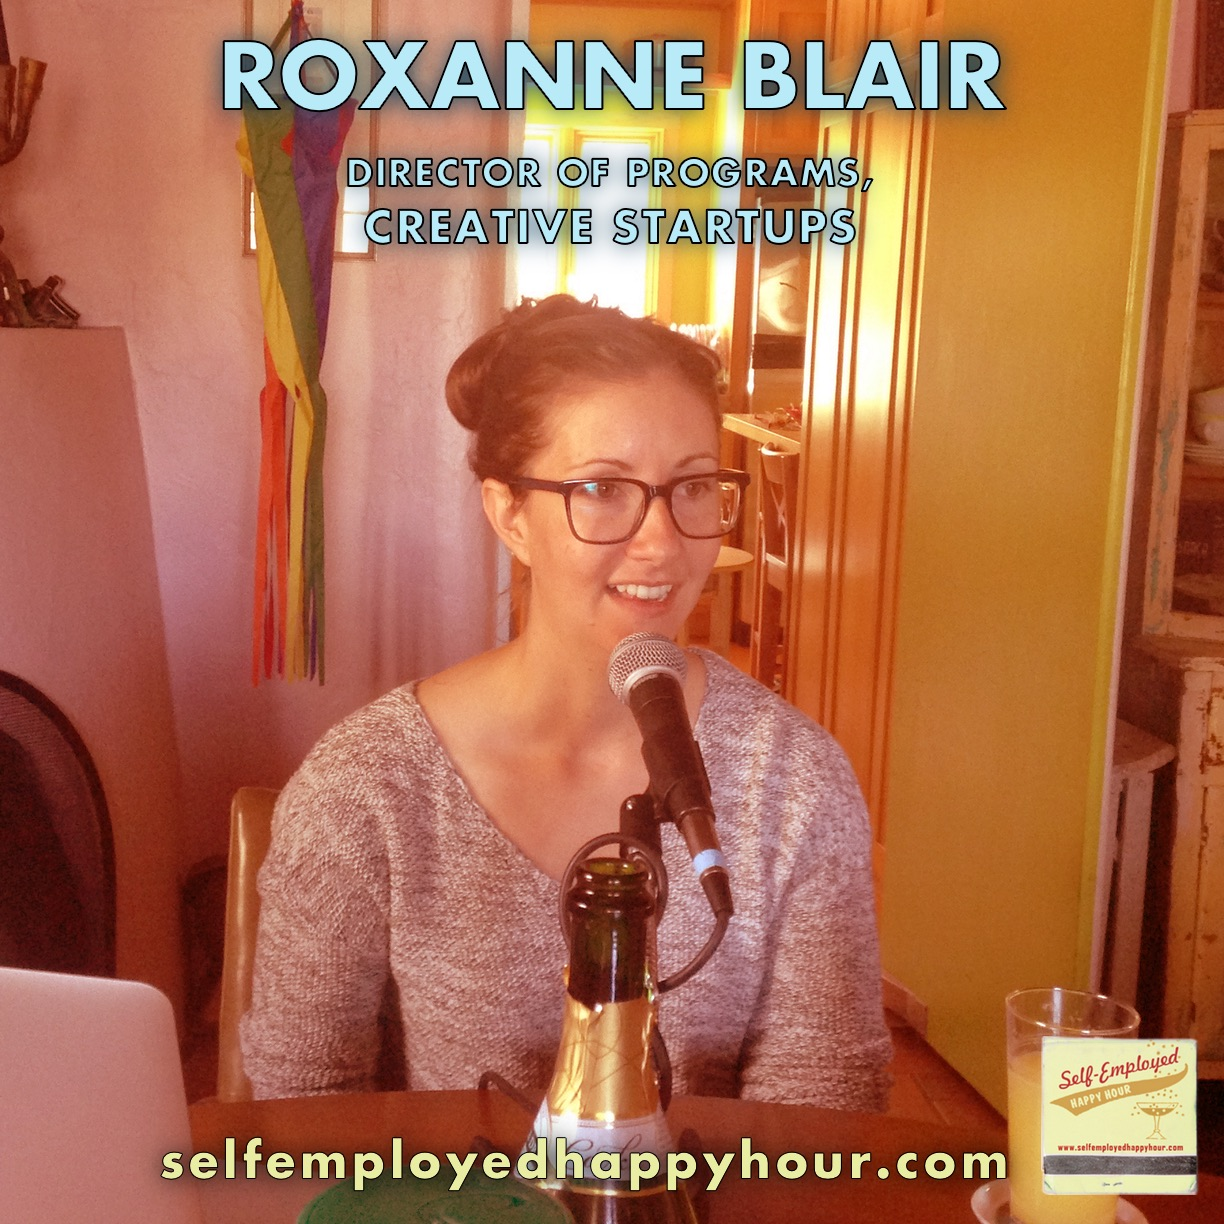 Roxanne Blair, Director of Programs at Creative Startups